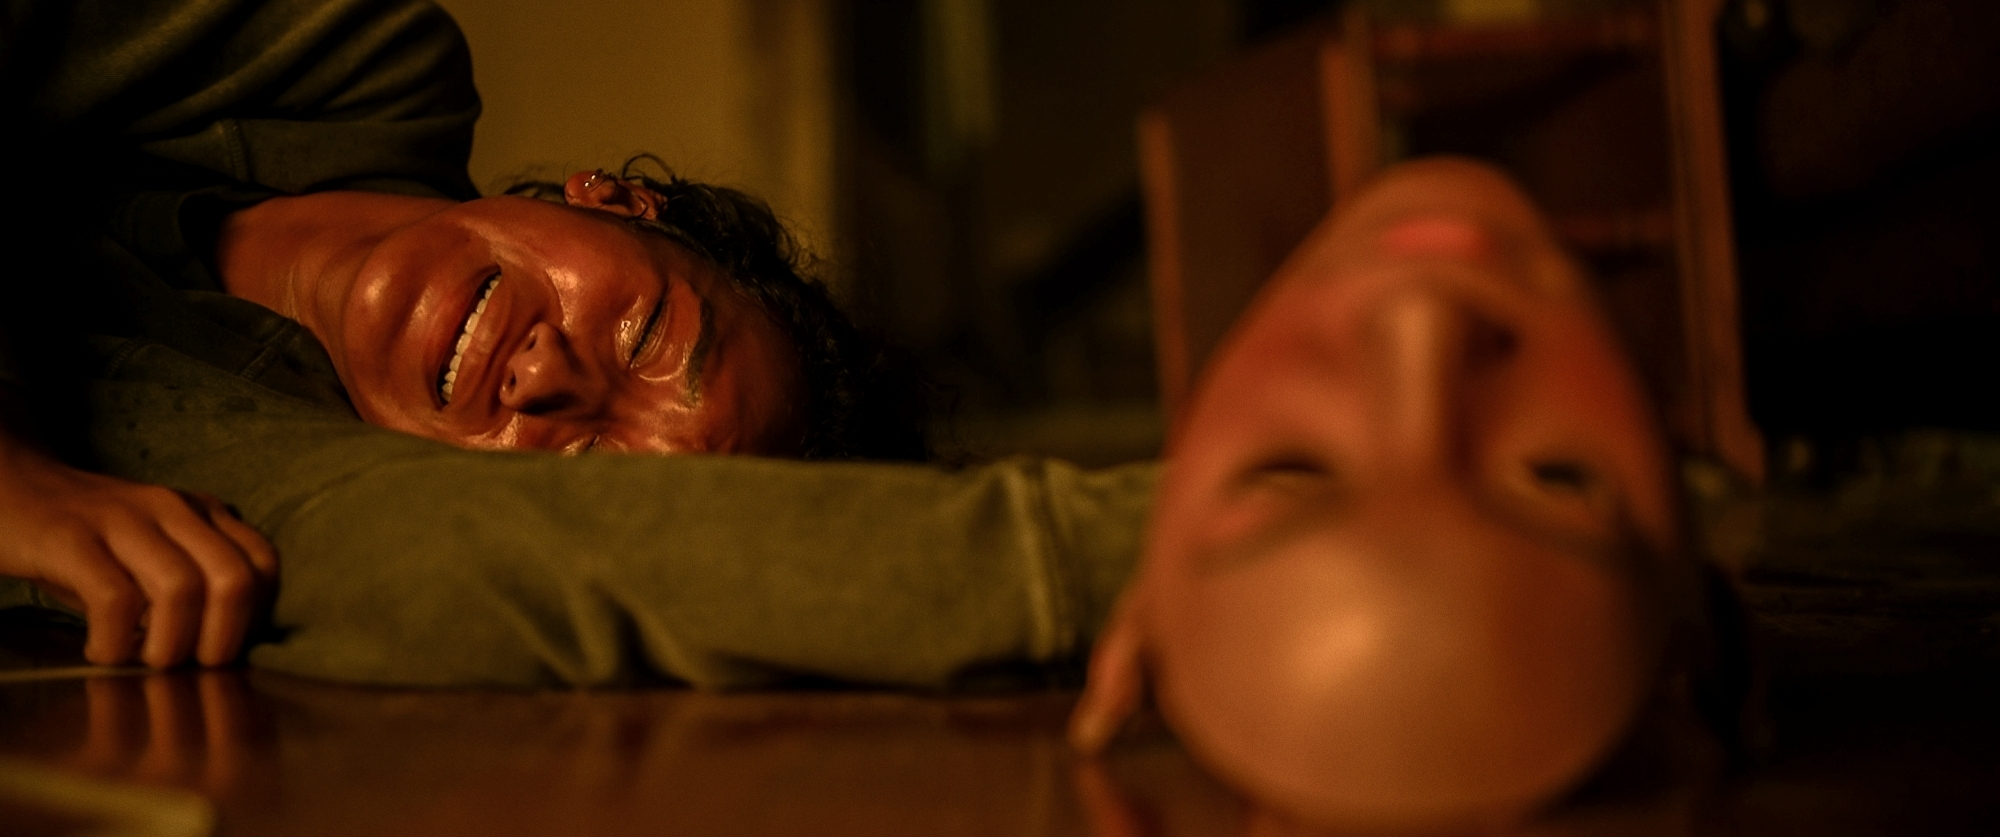 IANS Review: 'There's Someone Inside Your House': A competently mounted horror film (IANS Rating: **1/2)